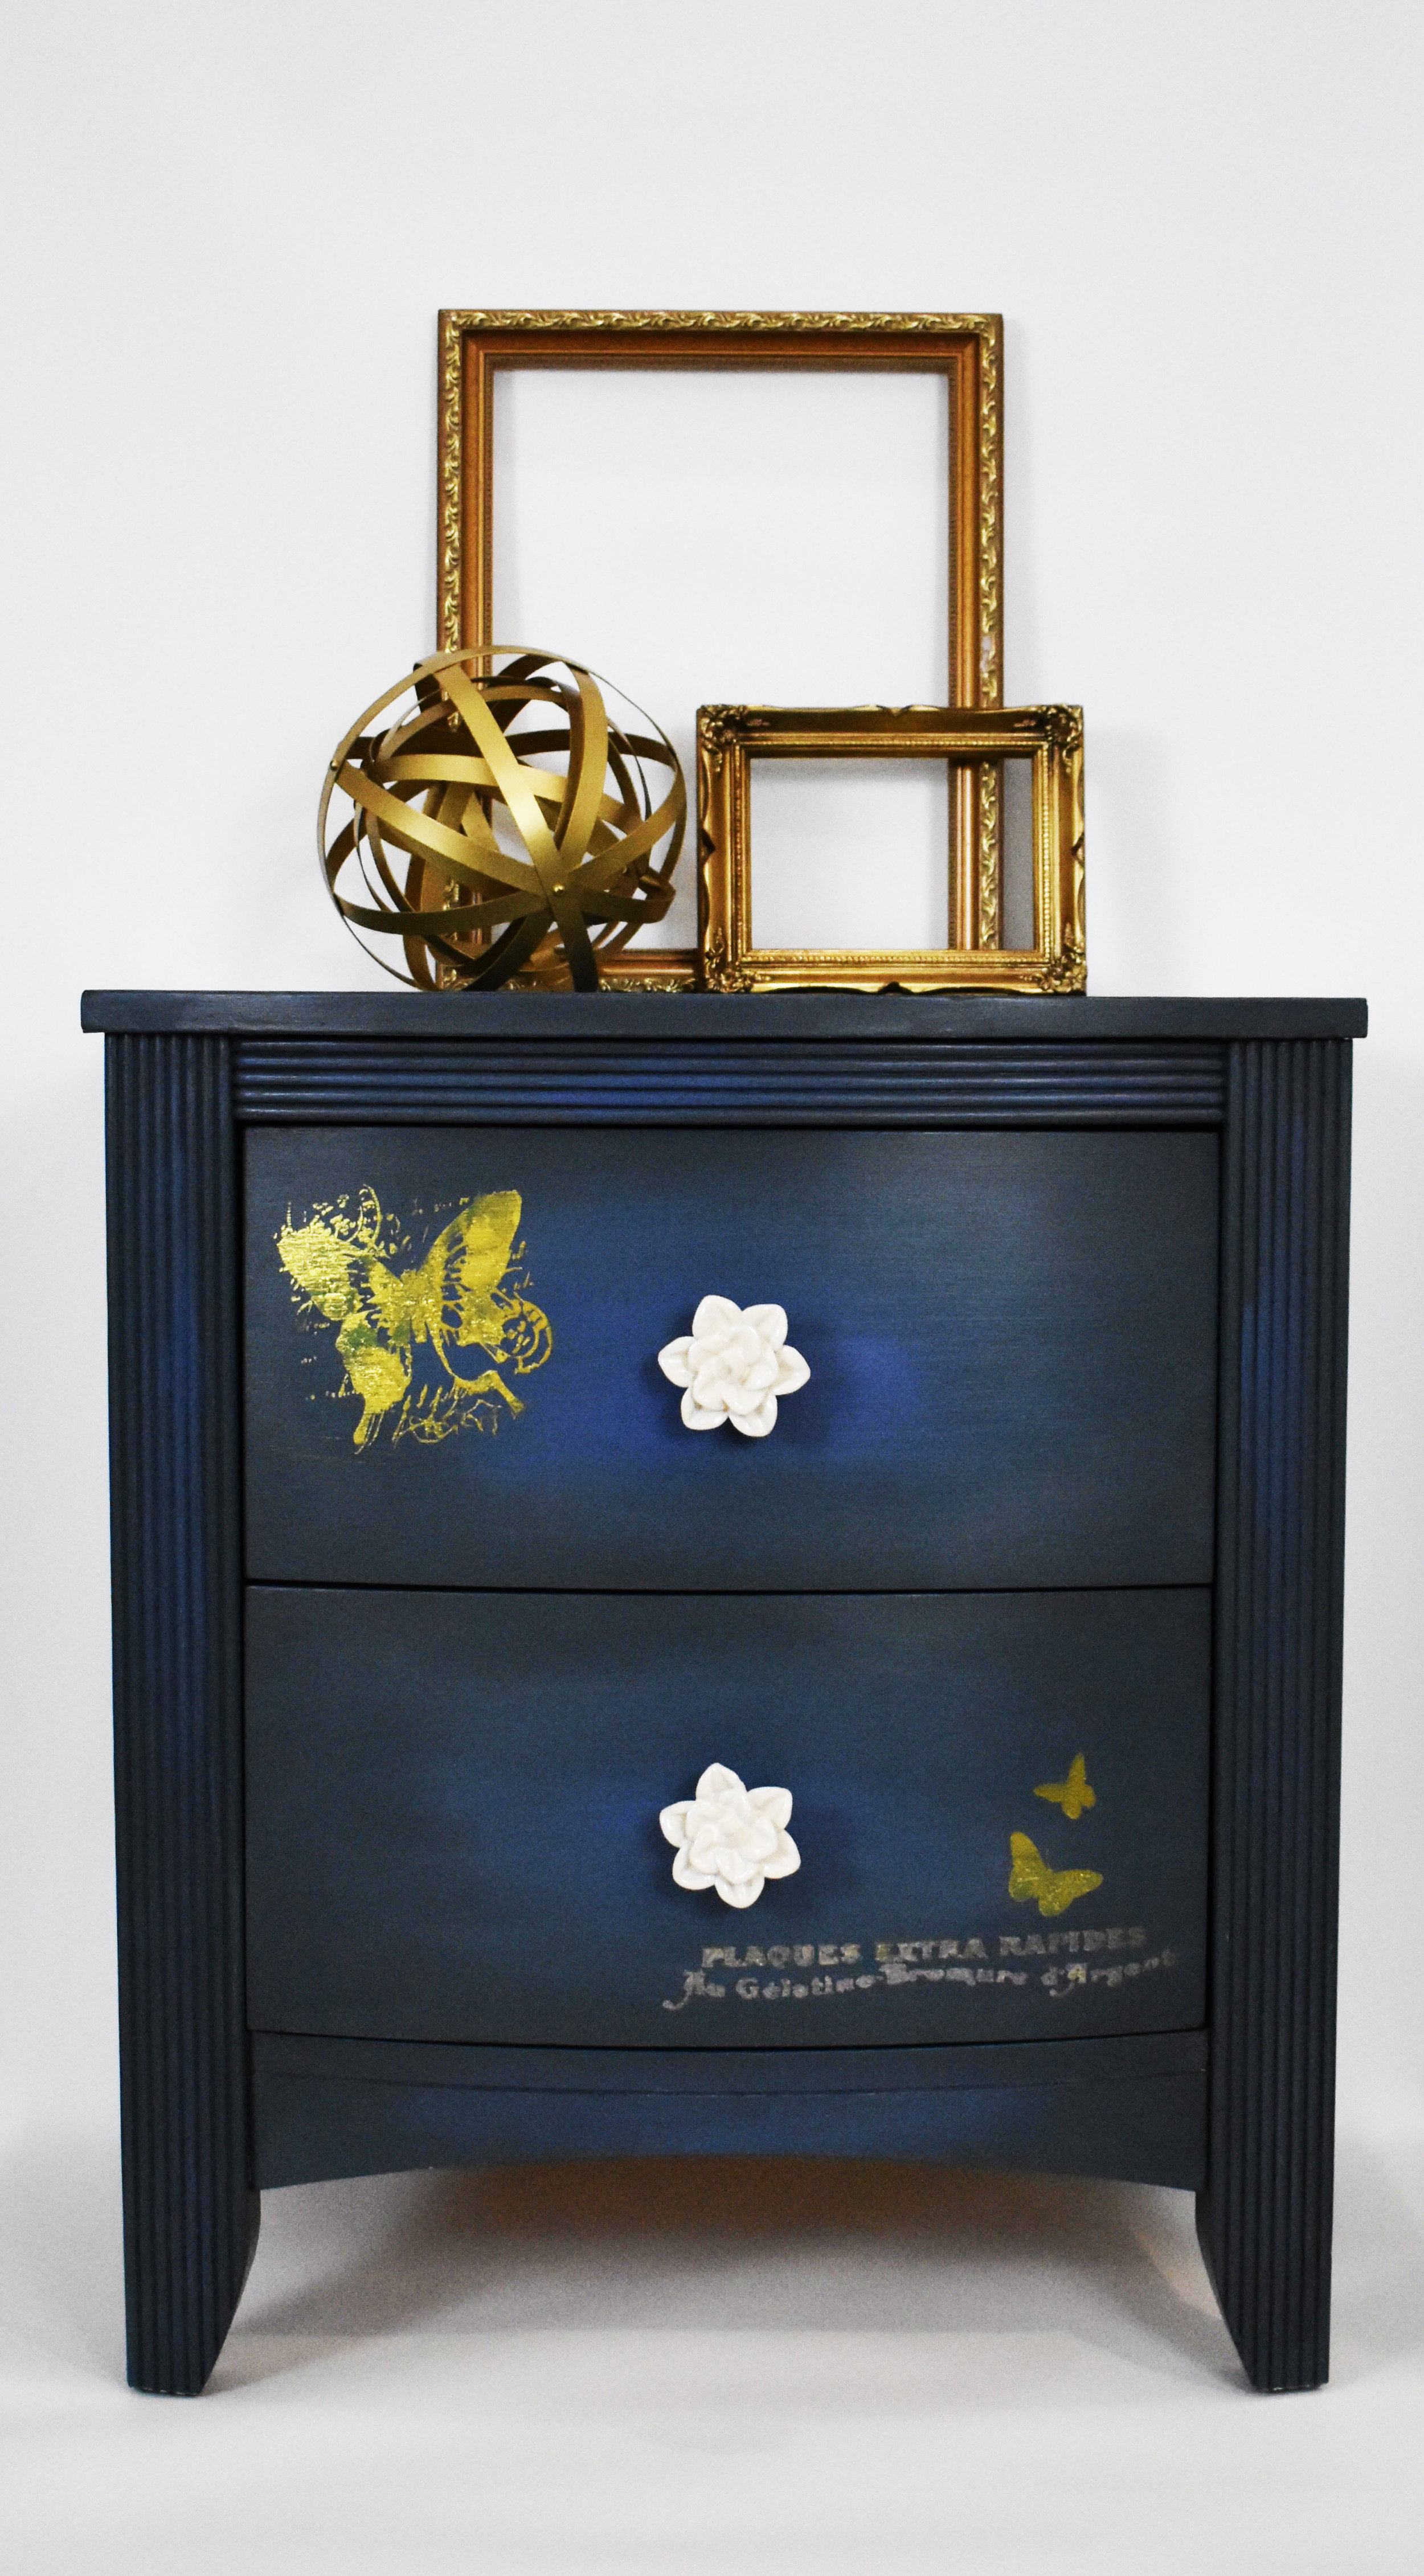 These transfers are perfect for adding a bot of detail to your furniture. A little bit can add just enough character and whimsy….Roz of New Old Finds created this sweet end table-love the butterflies floating around…